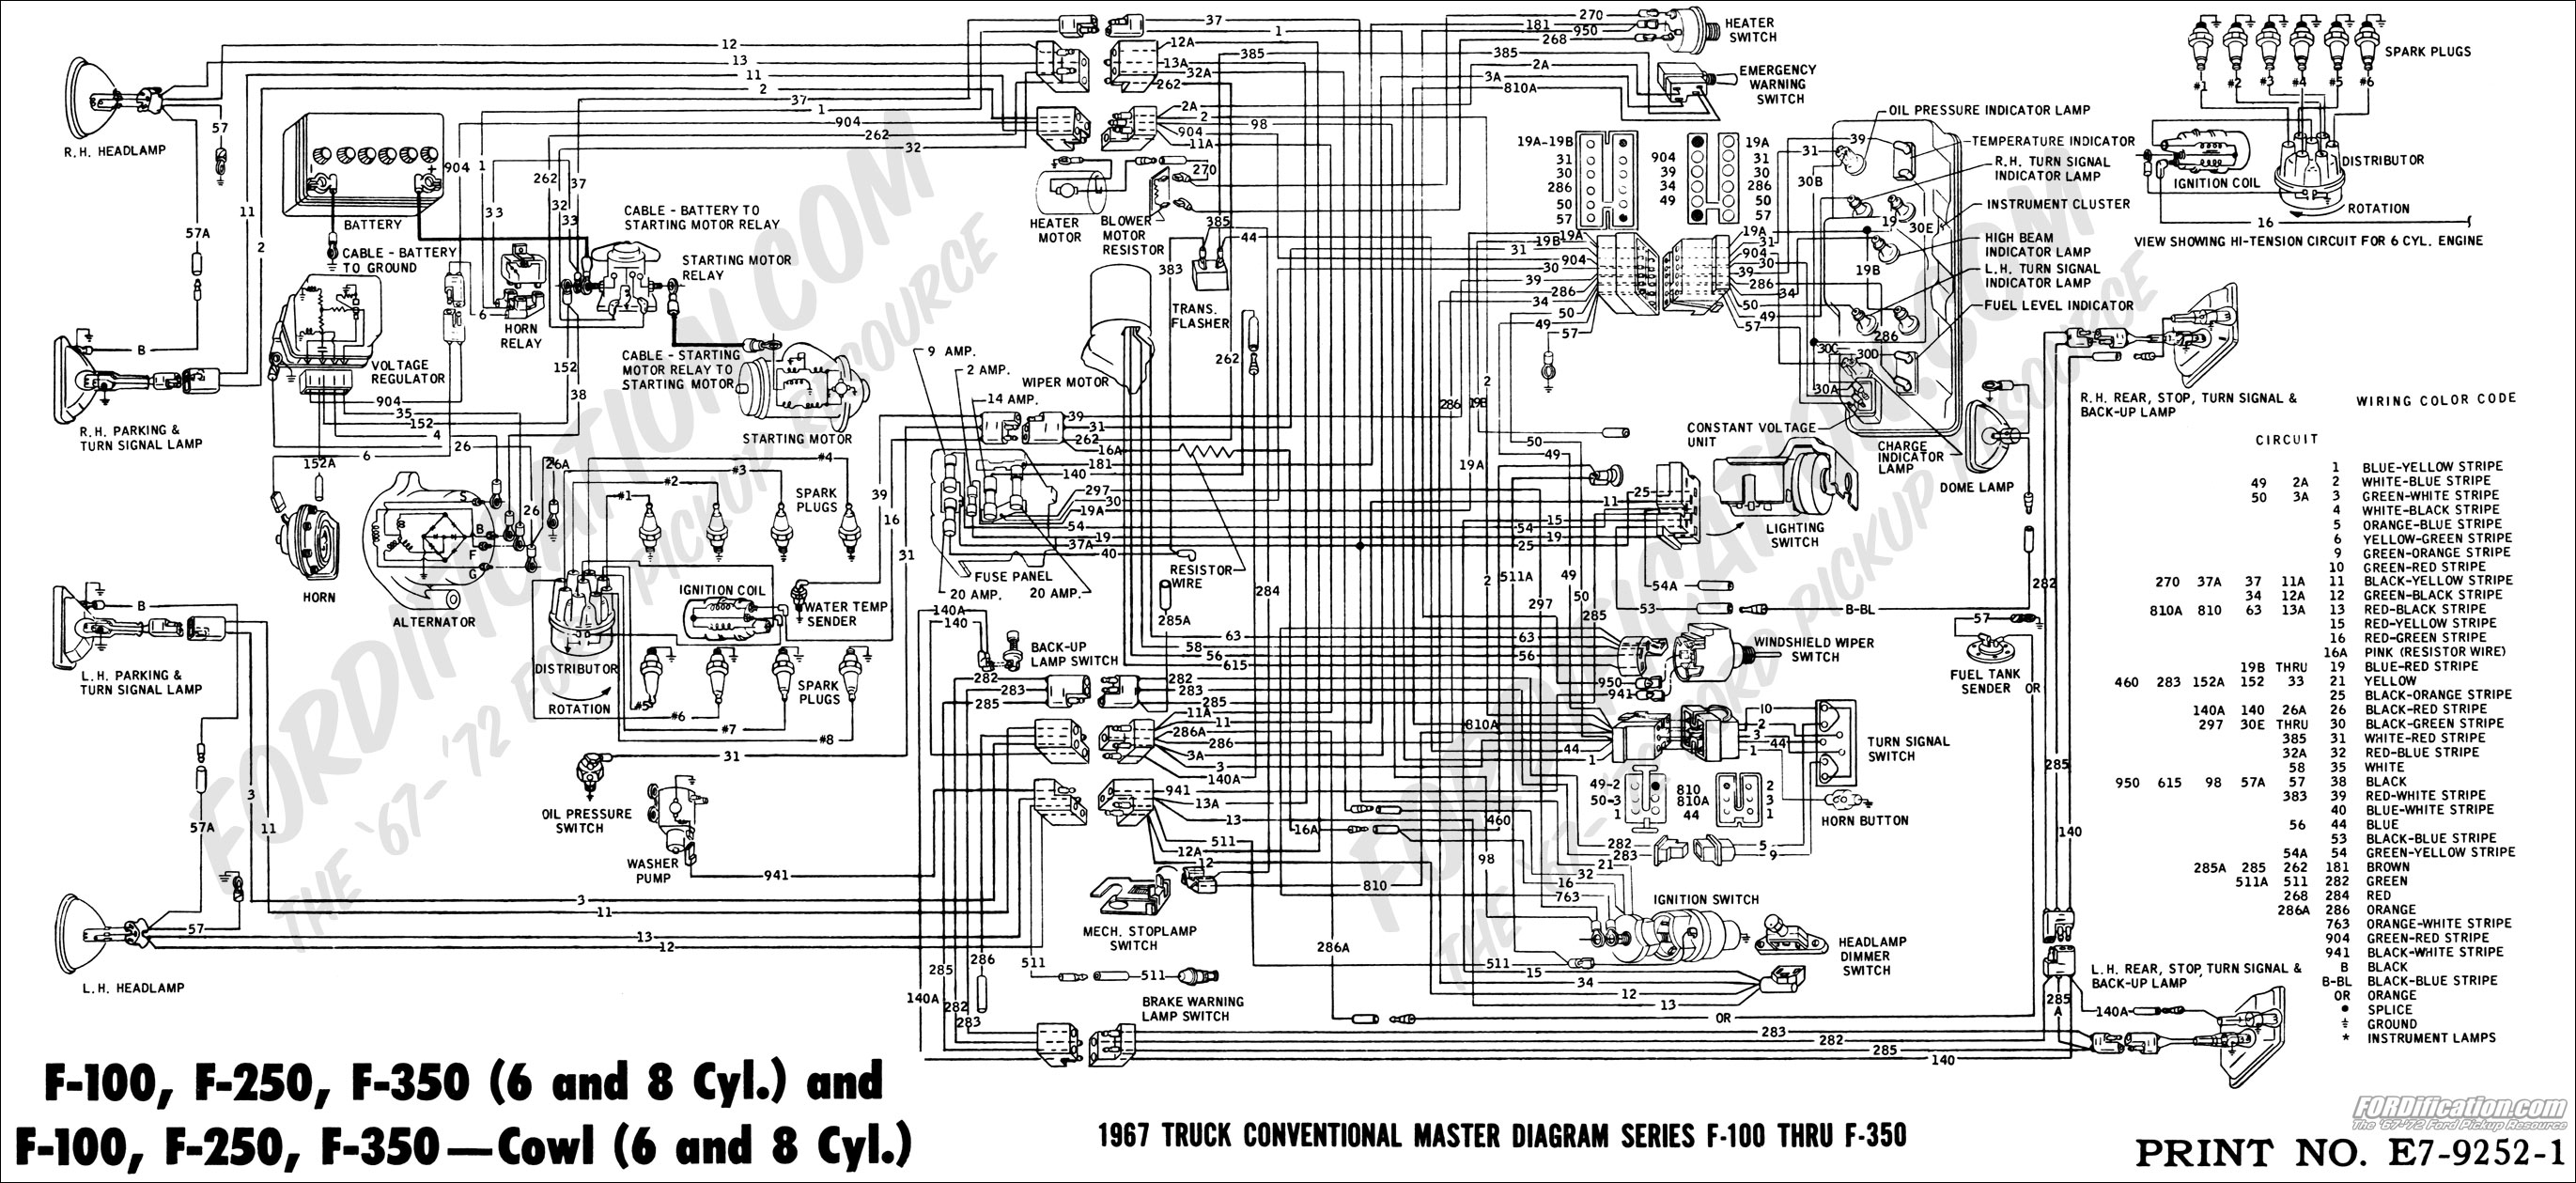 67masterdiagram 93 ford f 350 trailer wiring diagram wiring diagram simonand 1999 ford f450 wiring diagram at soozxer.org